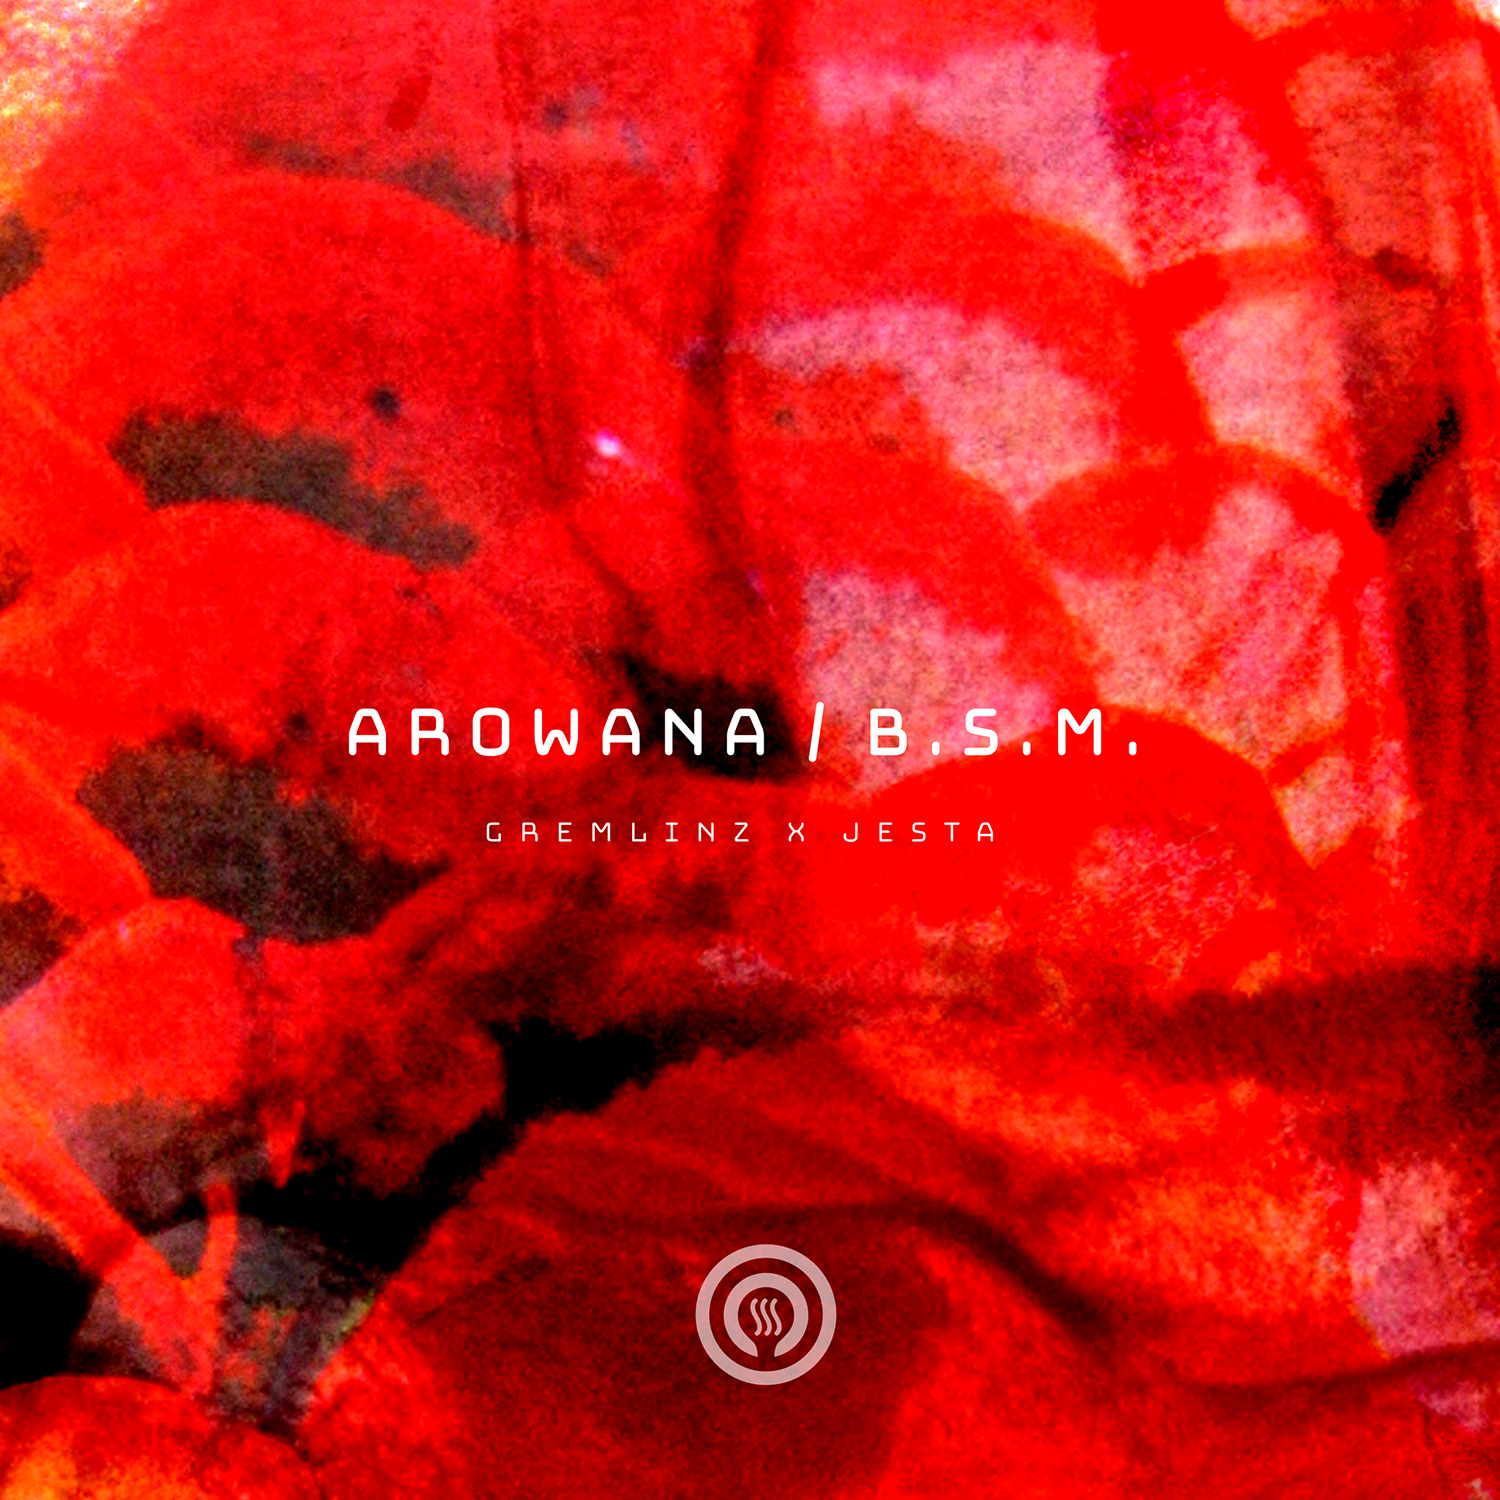 Arowana-Gremlinz-Jesta_drum-bass-album-cover-design